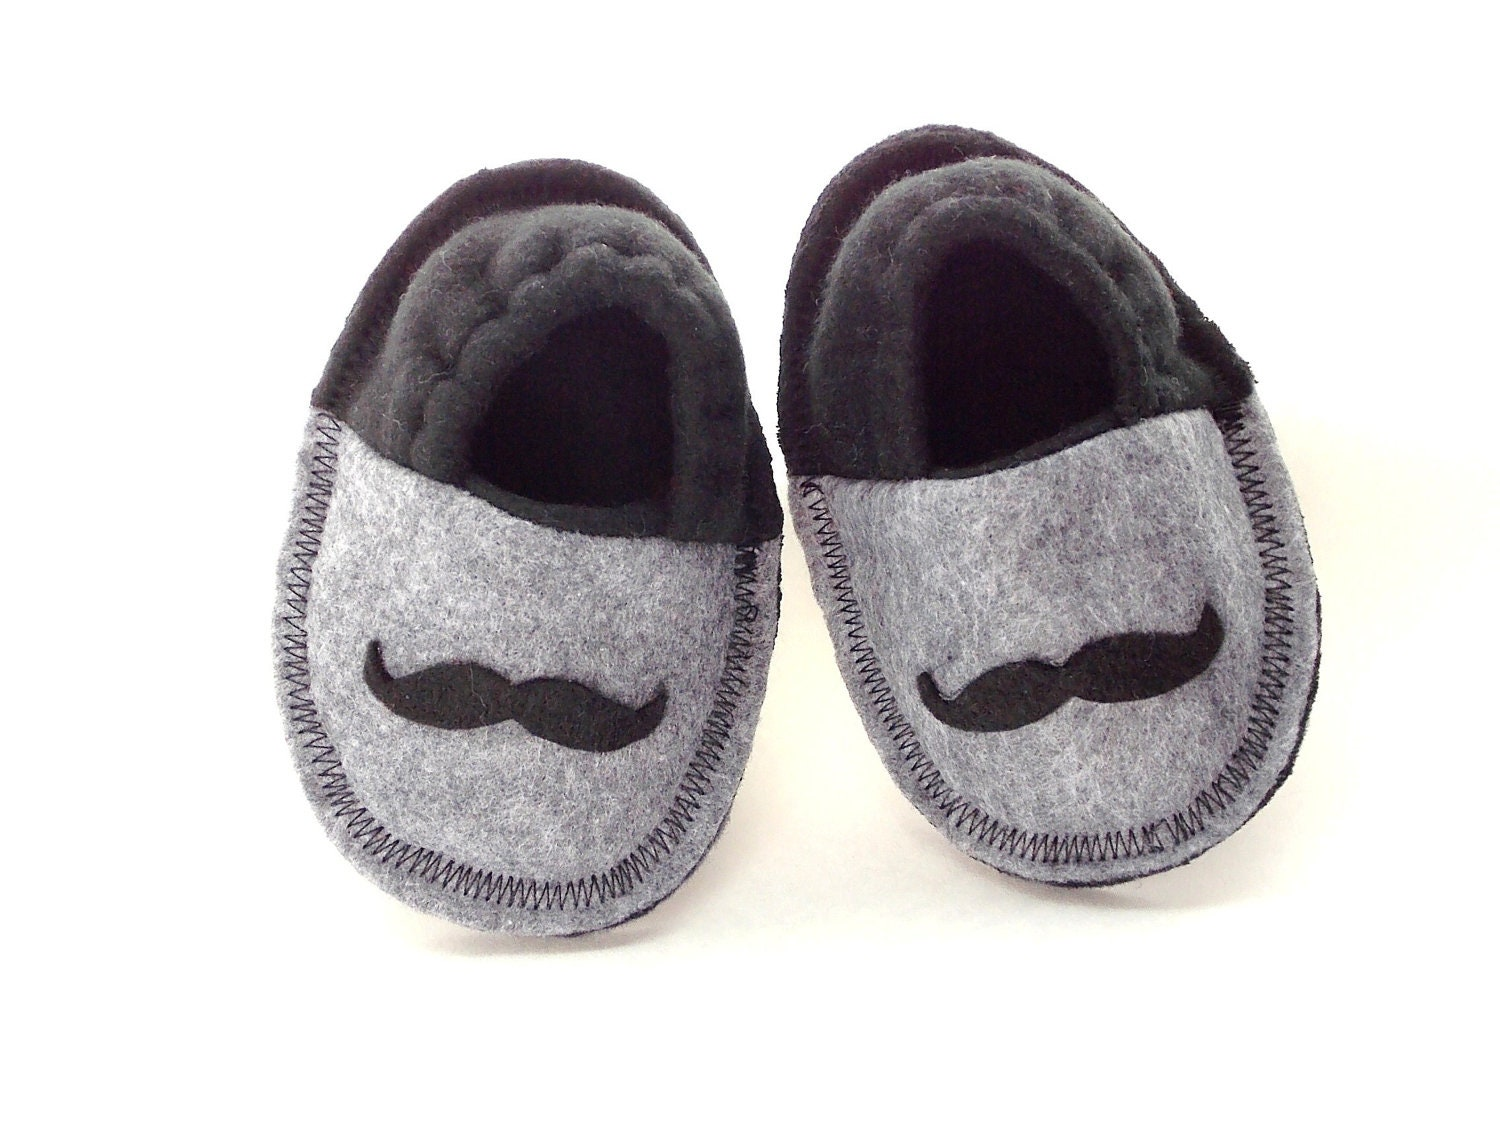 Infant Crib Shoes Baby Mustache Slippers Baby Shoes Fleece Booties Soft Felt Soles Gray Black 0-3 3-6 Months - MoJosCozyToes